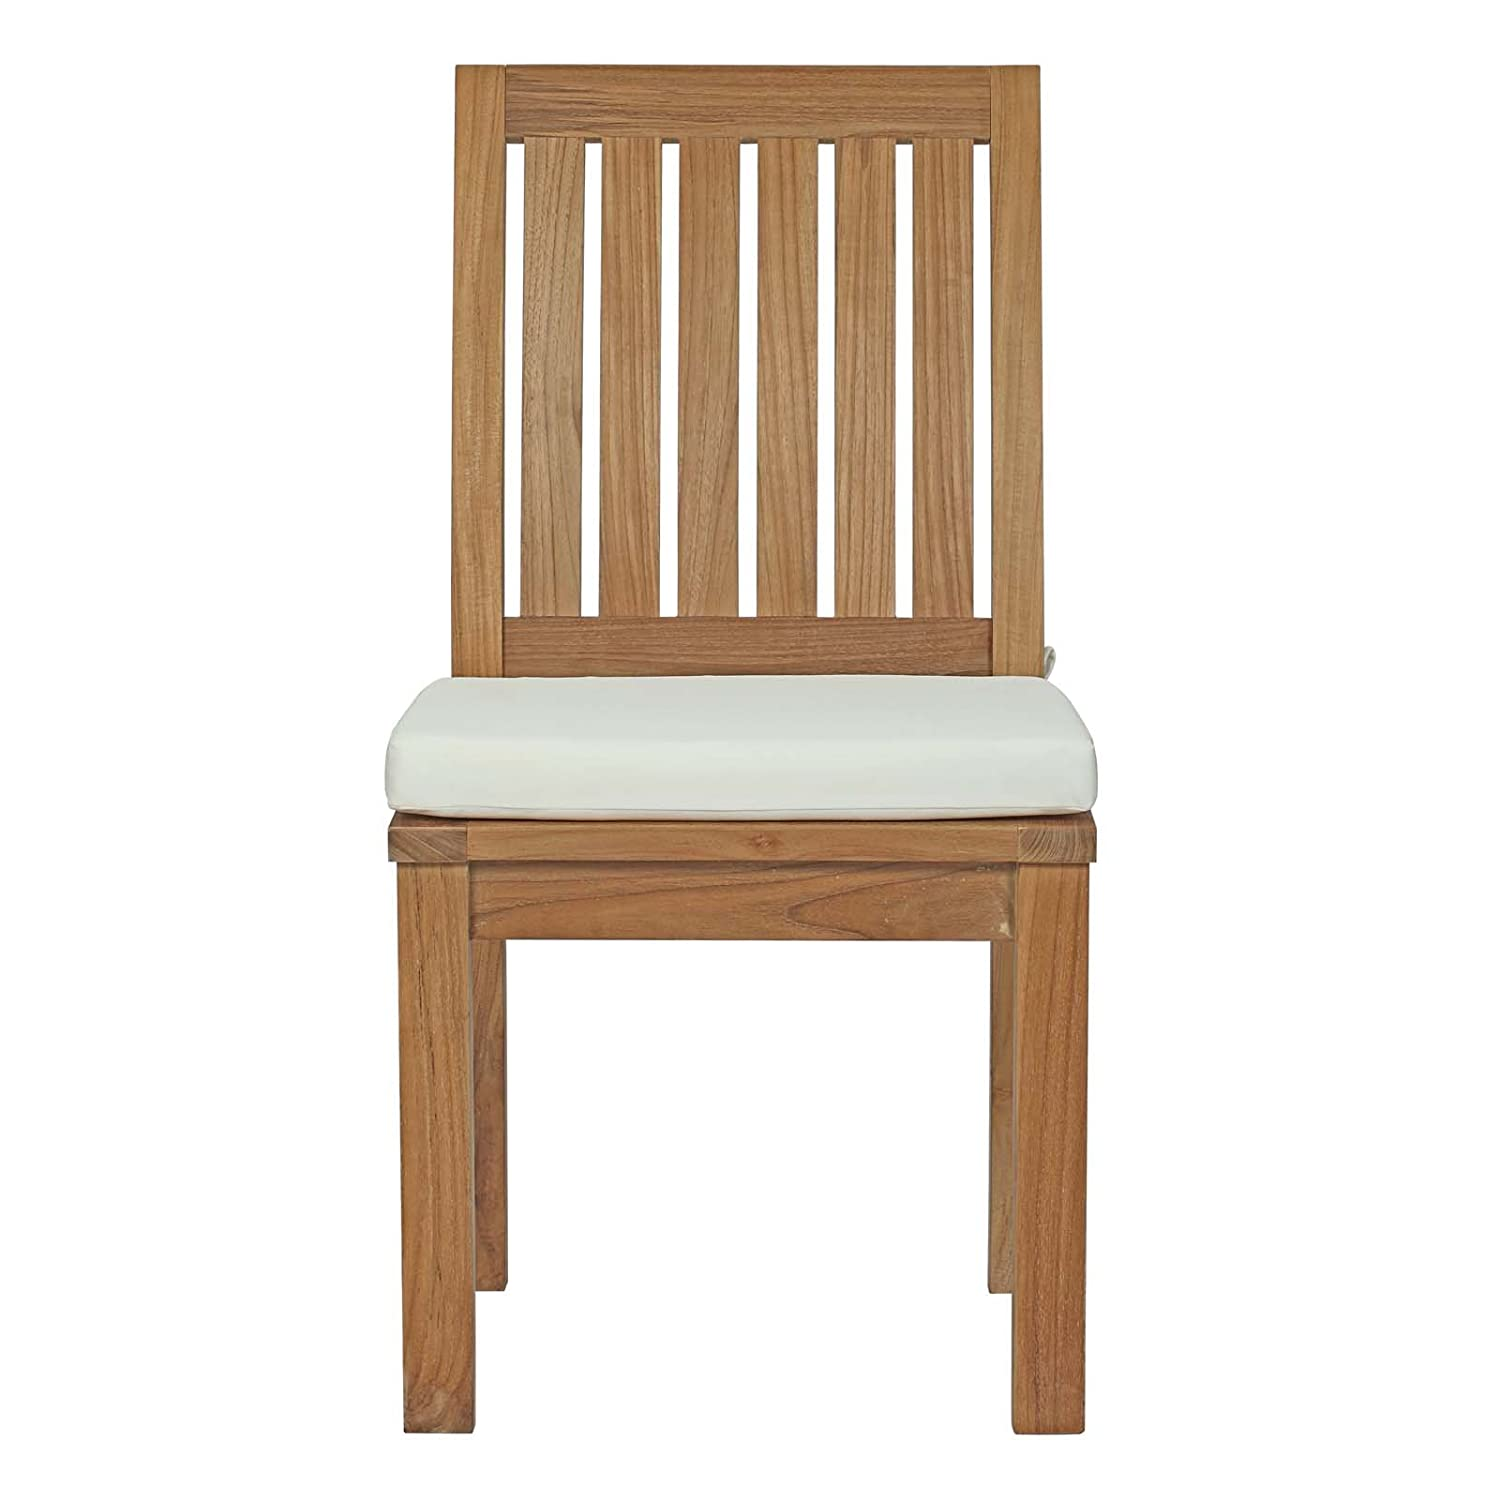 Amazon Com Modway Marina Teak Wood Outdoor Patio Dining Side Chair